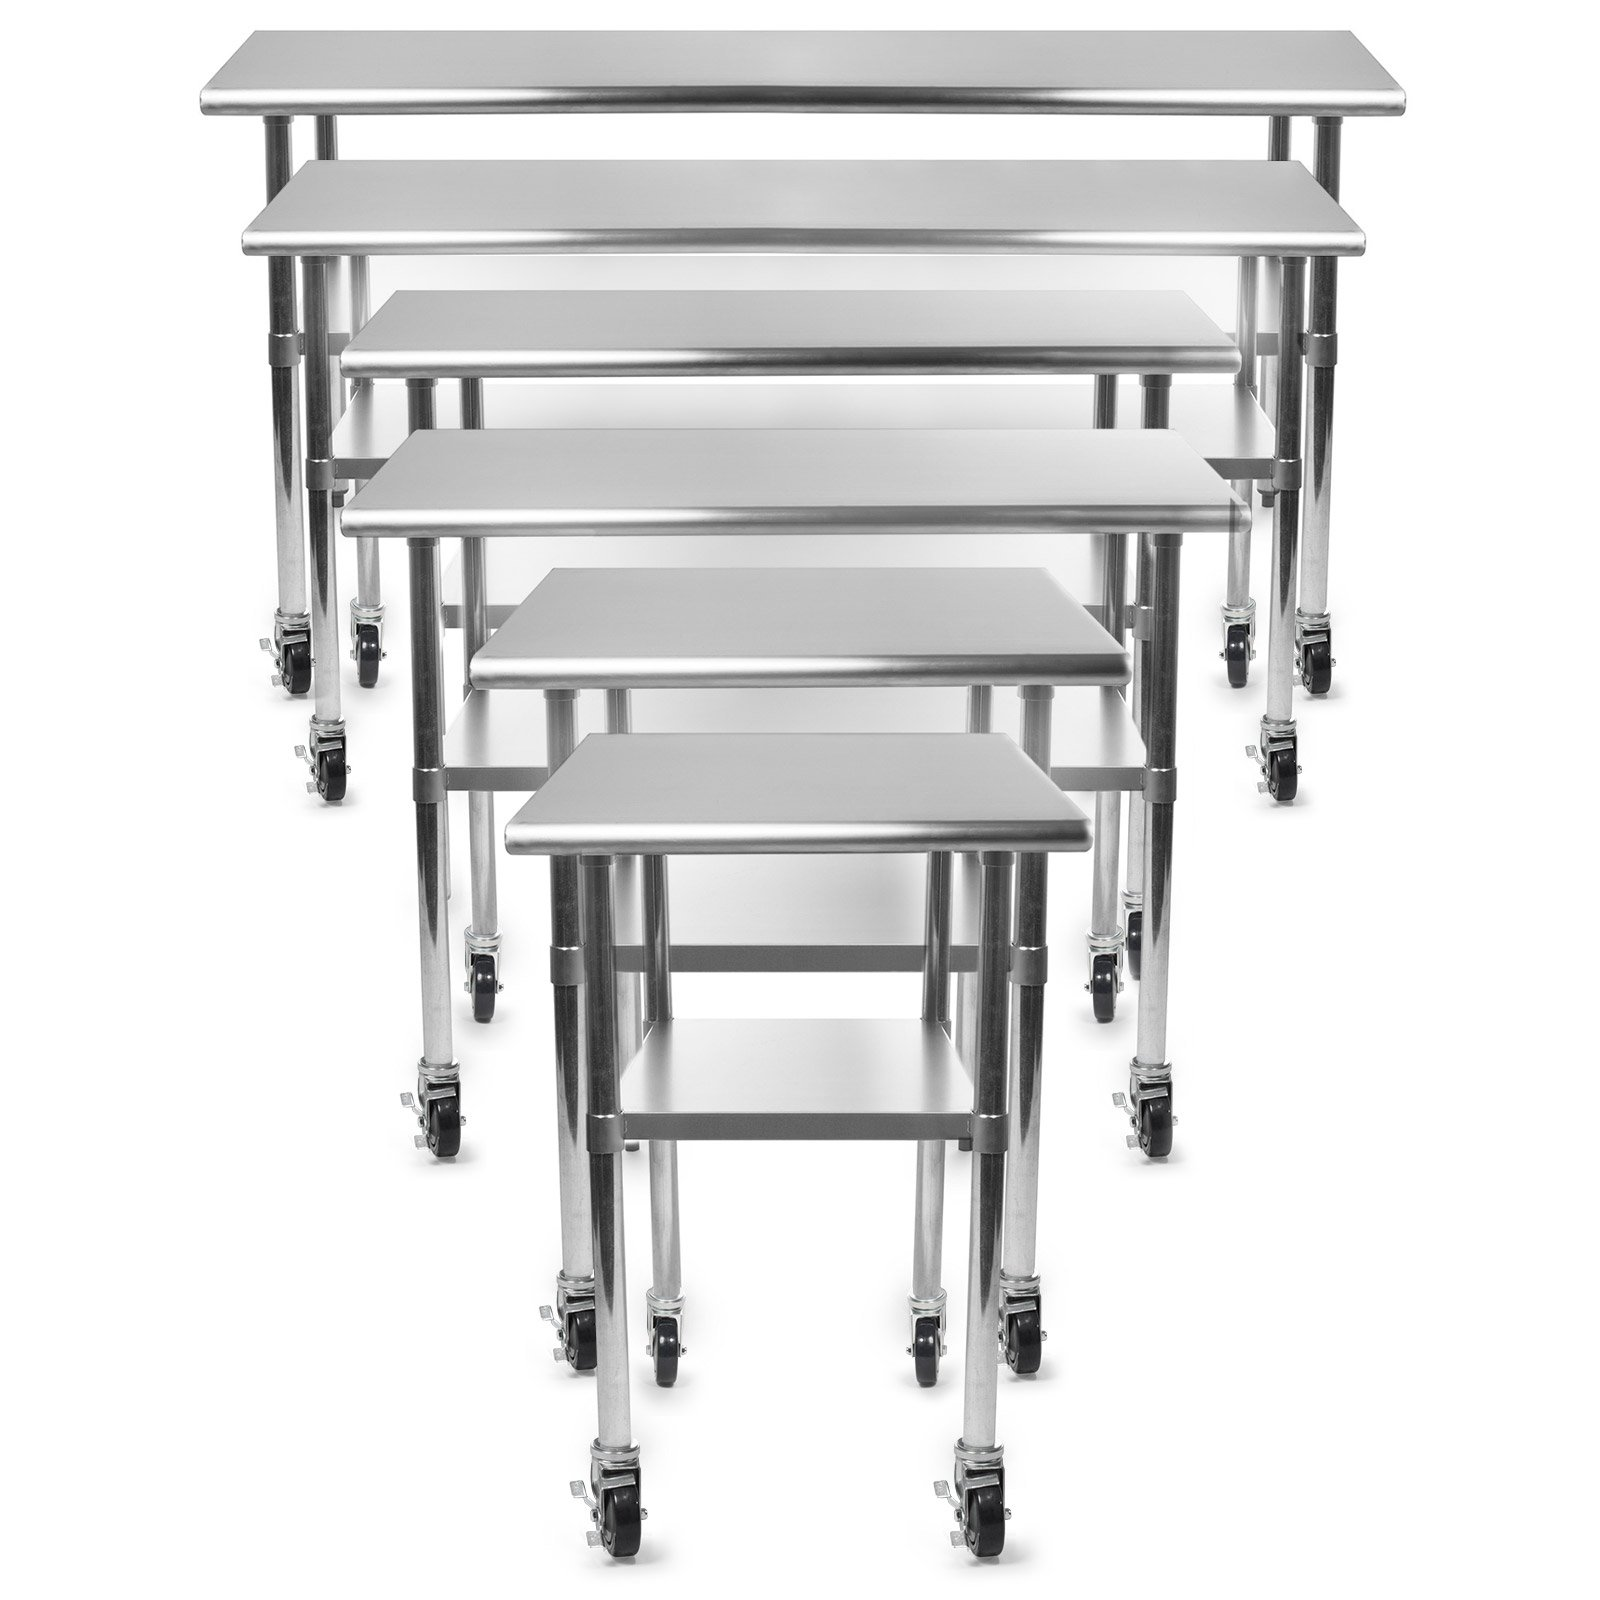 GRIDMANN NSF Stainless Steel Commercial Kitchen Prep & Work Table w/ 4 Casters (Wheels) - 30 in. x 24 in. by GRIDMANN